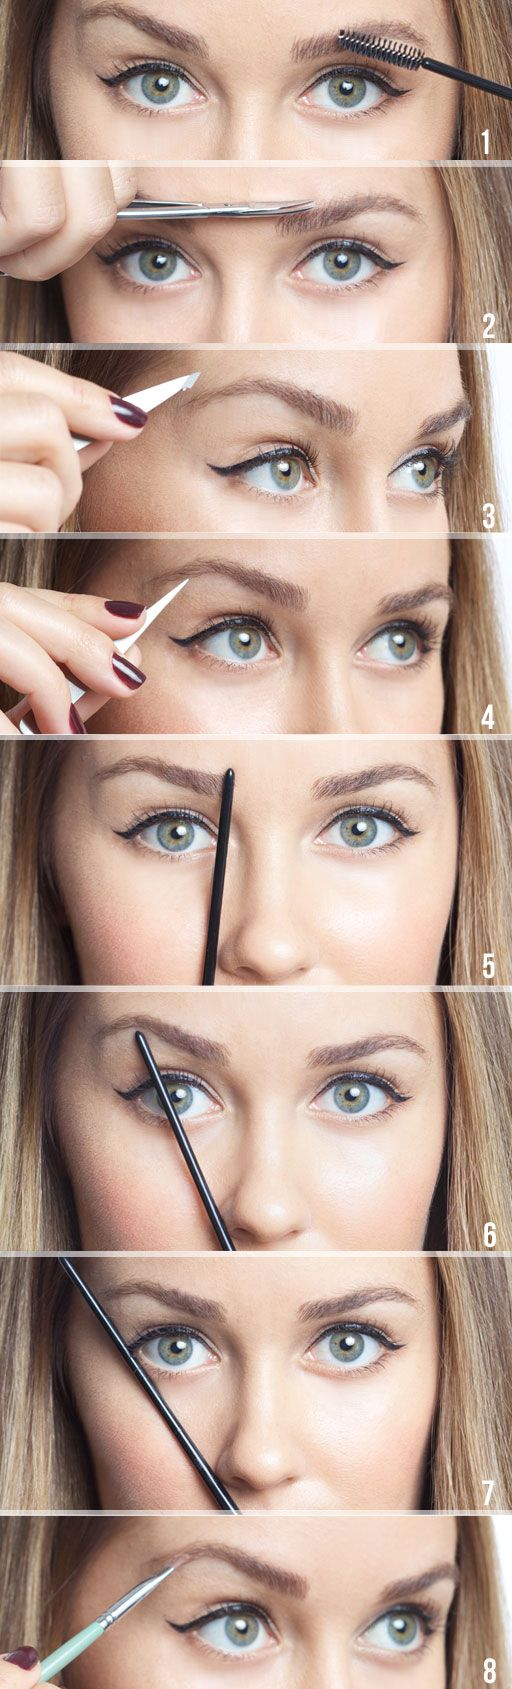 Lauren Conrad DIY eyebrow tutorial - perfect brows